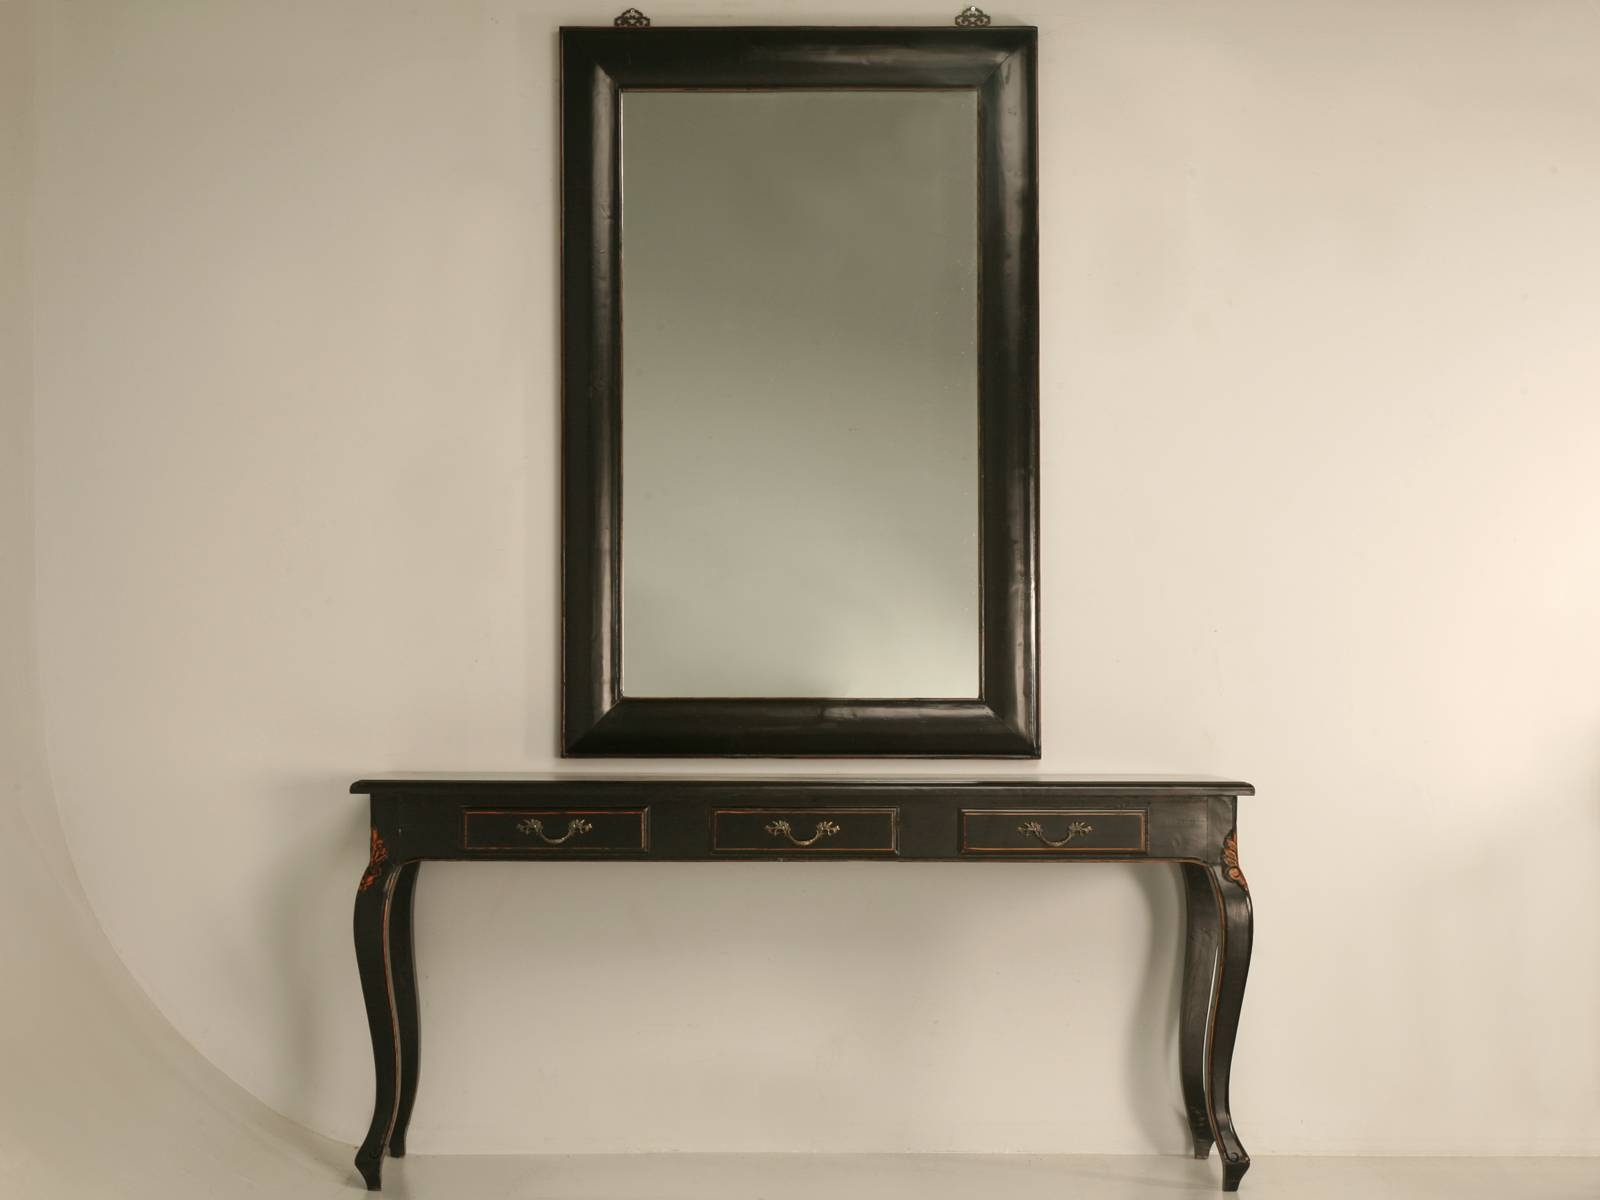 Console Table With Mirror – Harpsounds.co intended for Mirrors Console Table (Image 5 of 15)